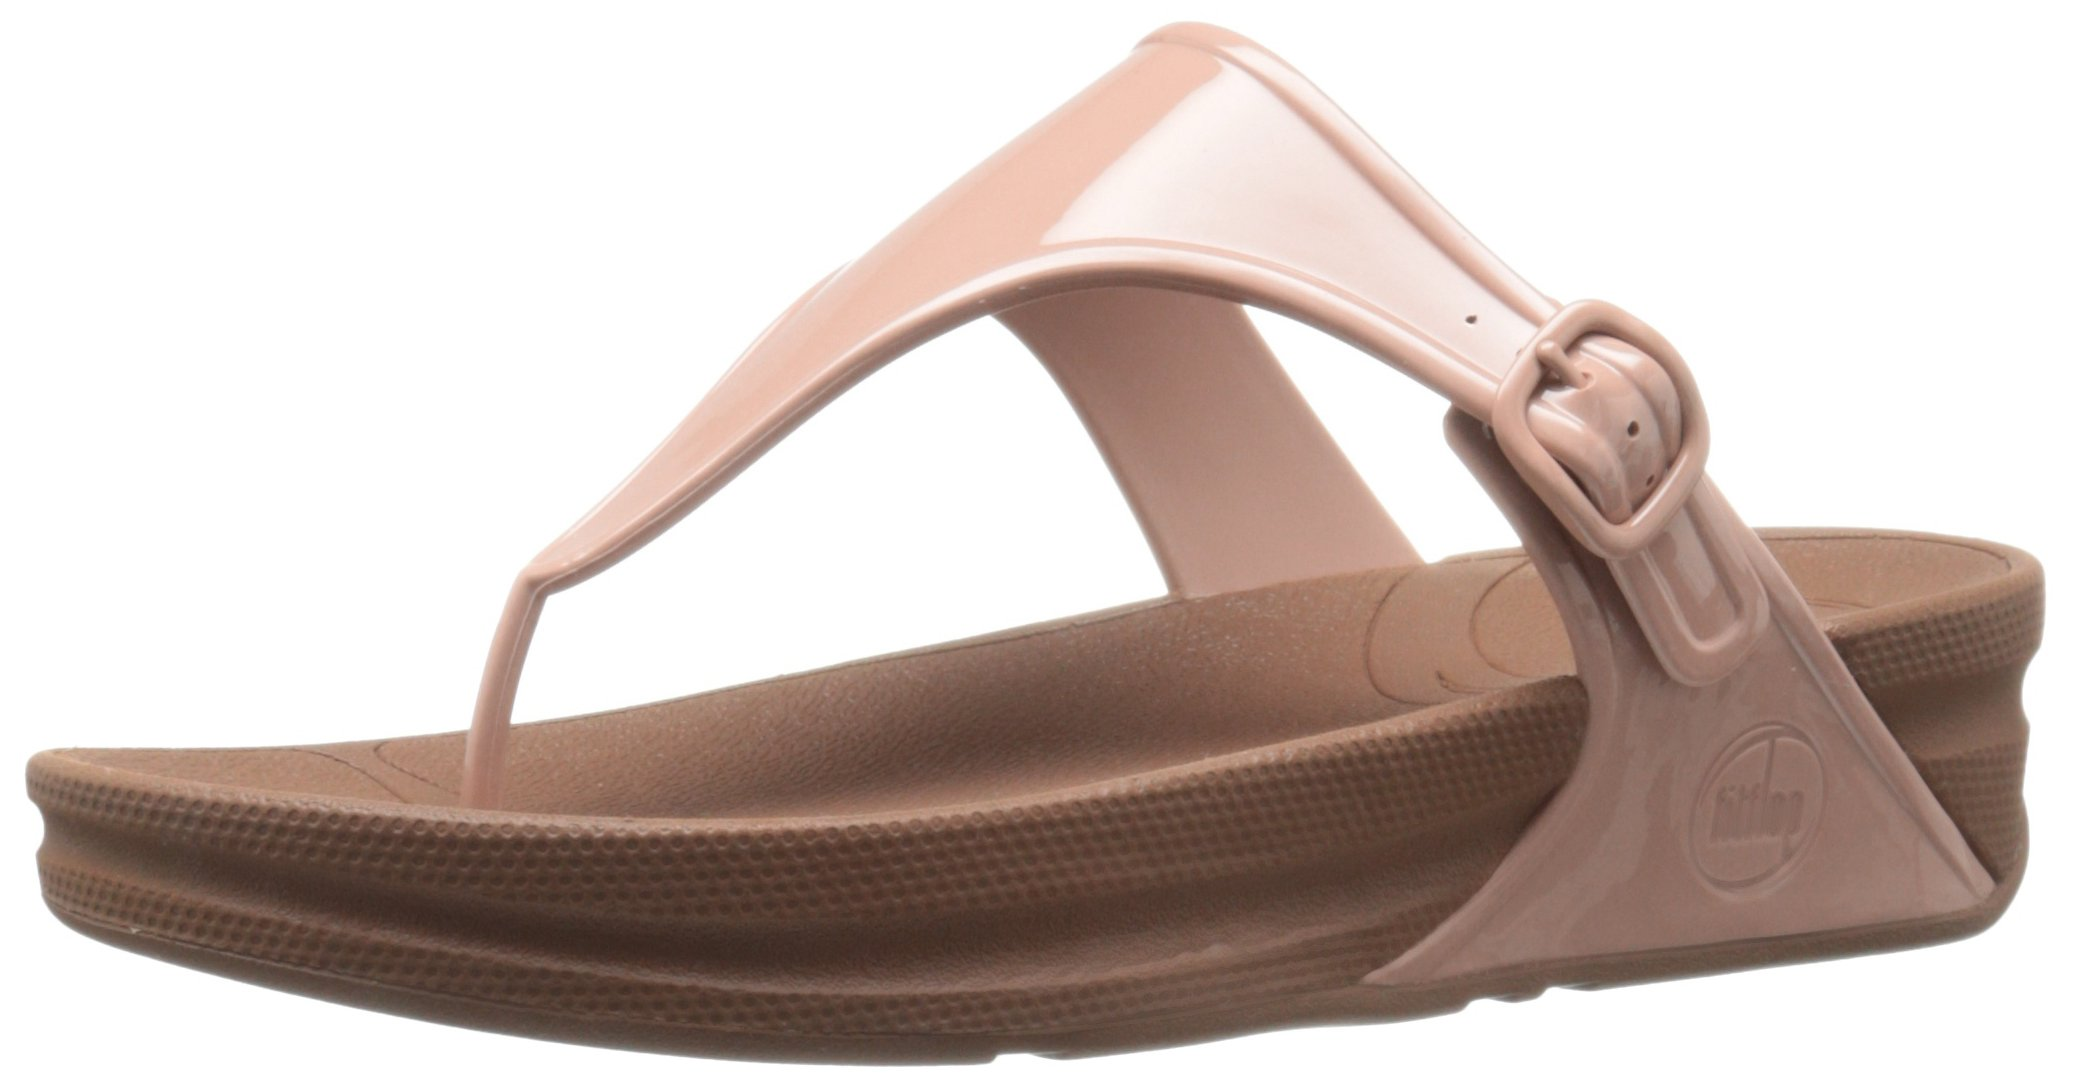 3cb63ffaceb63e Price Fitflops Philippines